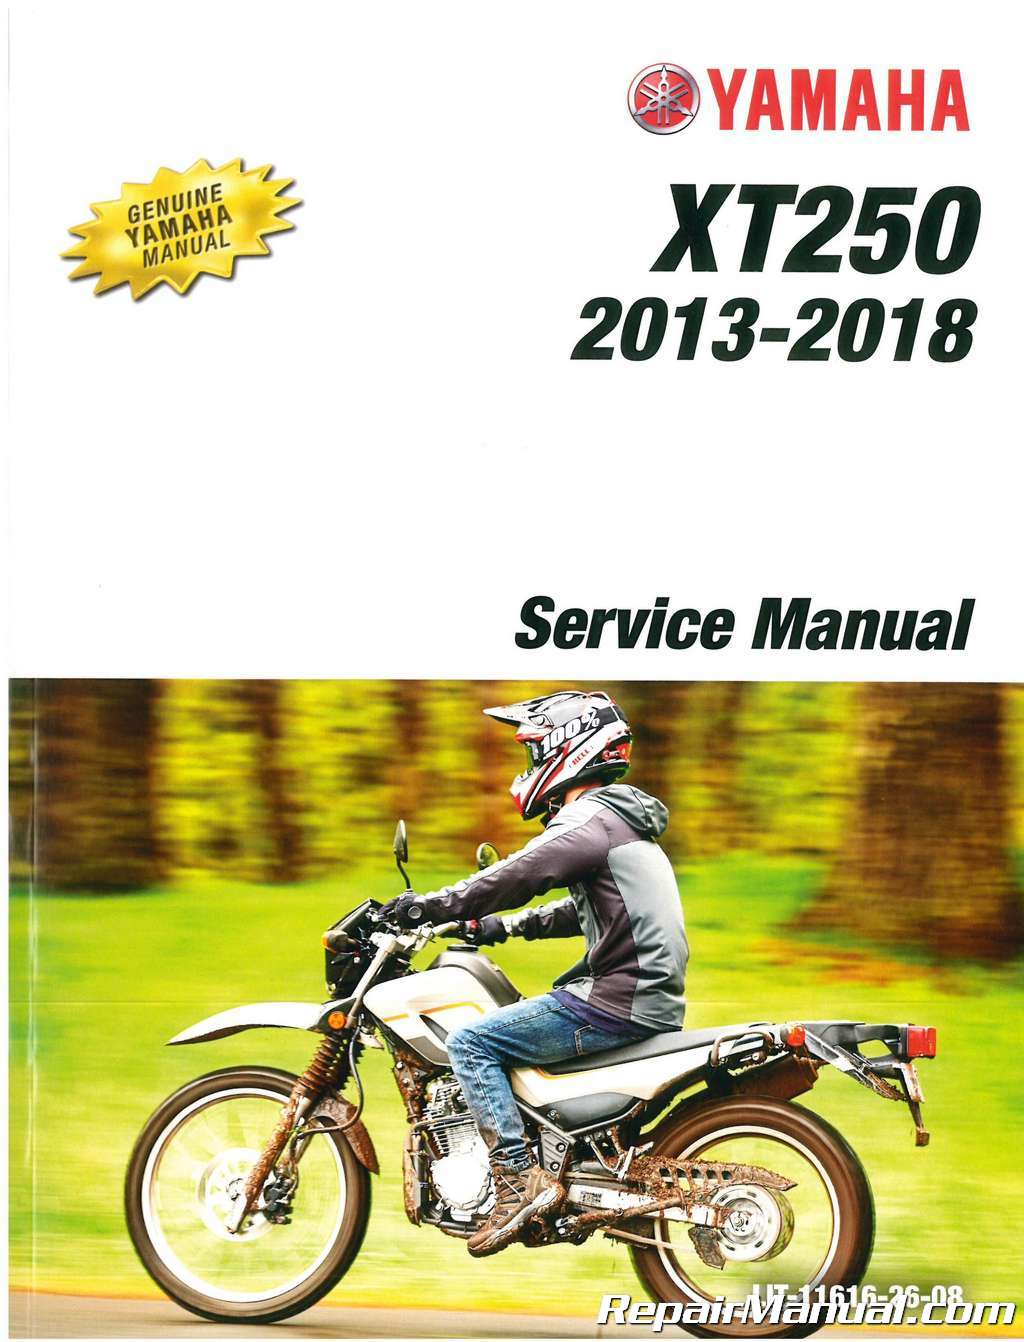 2013 2018 yamaha xt250 motorcycle service manual rh repairmanual com 2008 yamaha xt 250 service manual yamaha xt 250 repair manual pdf